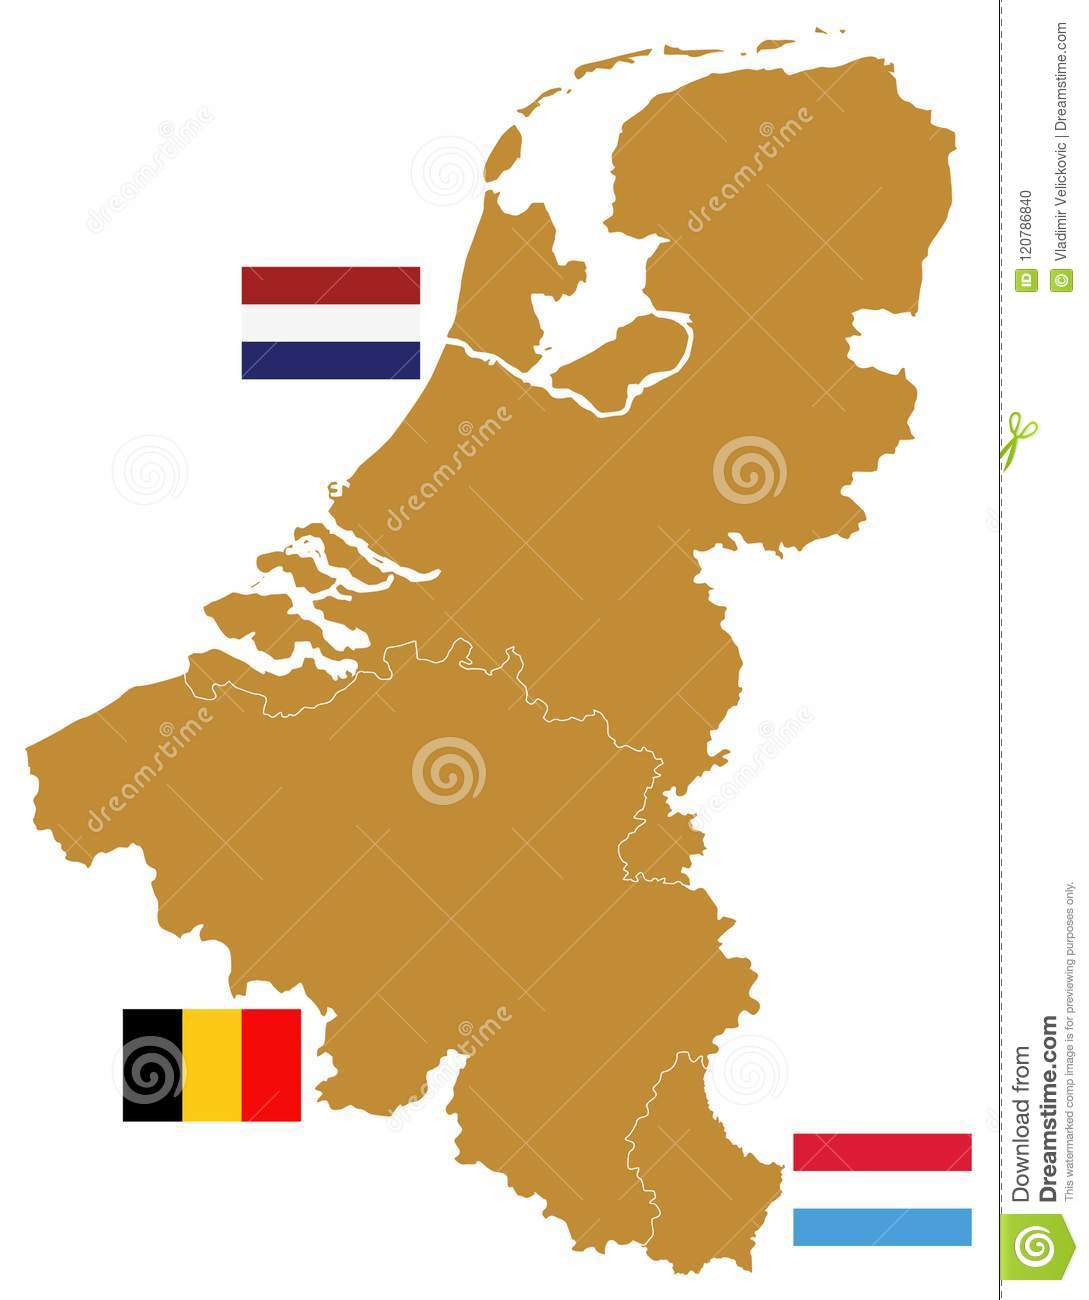 Benelux Map And Flags Three States In Western Europe Belgium The Netherlands And Luxembourg Stock Vector Illustration Of Travel Netherlands 120786840